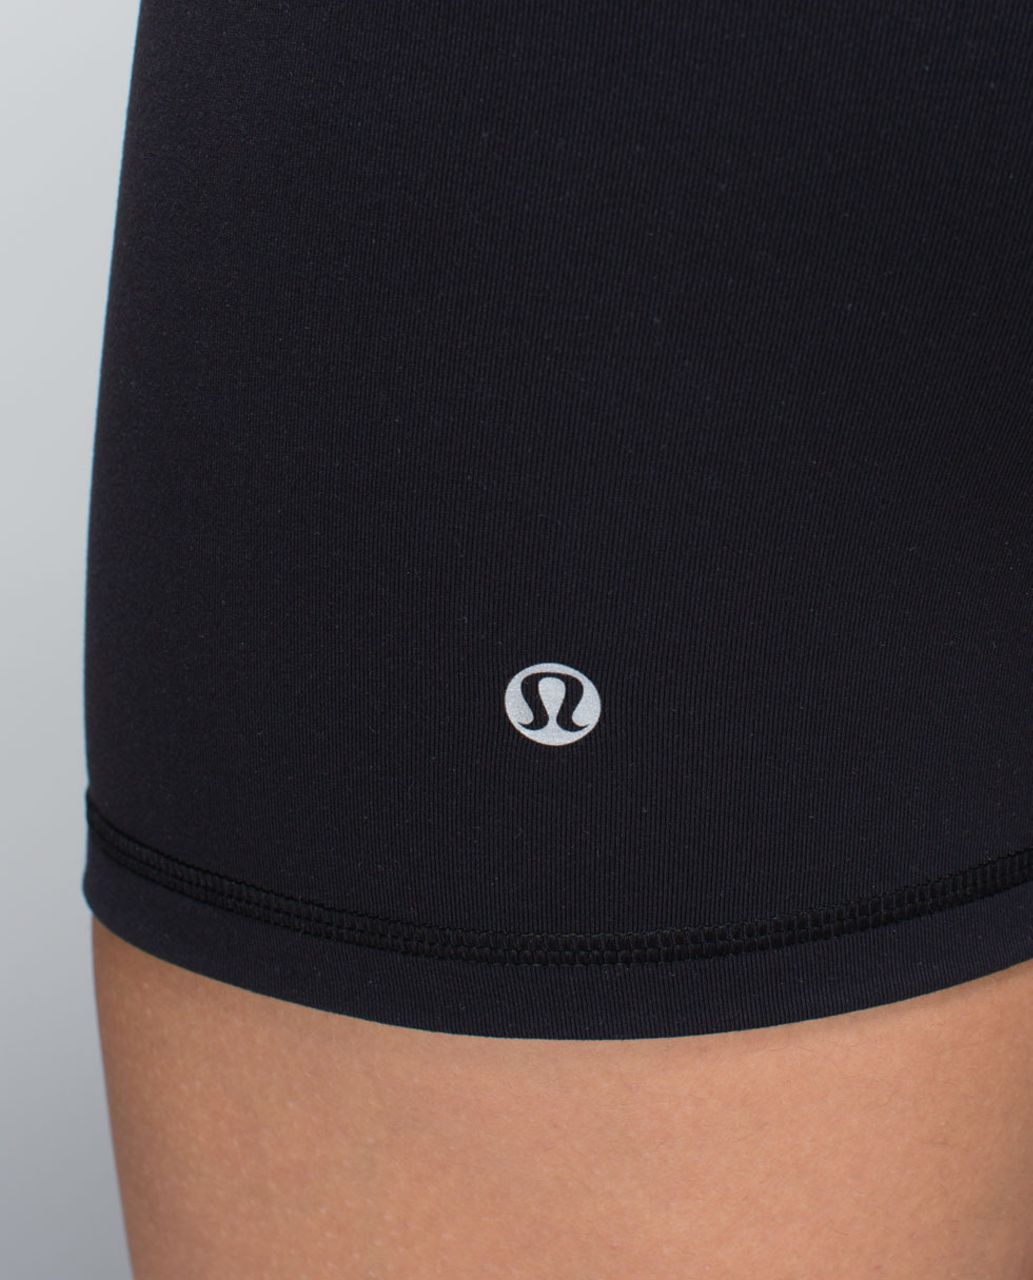 Lululemon Groove Short *Full-On Luon (Regular) - Black / Su14 Quilt 4